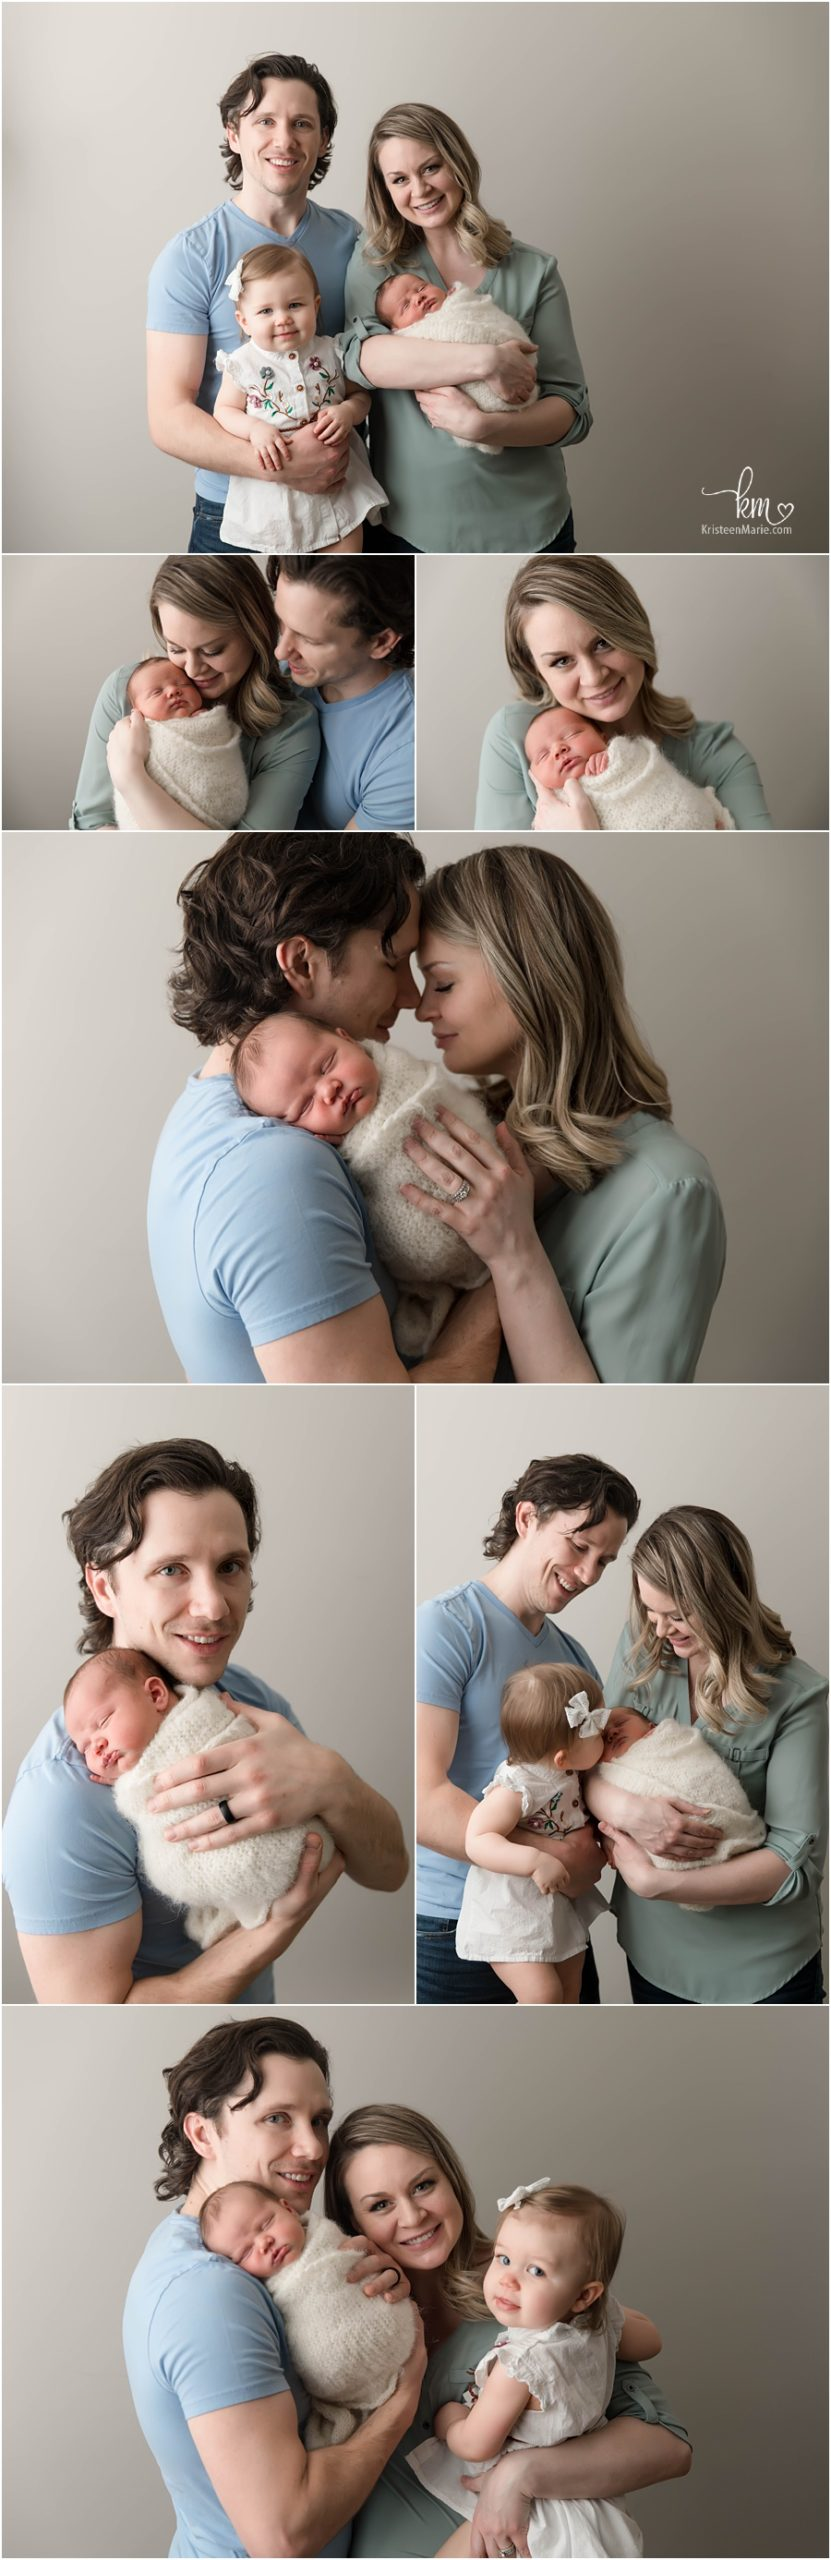 family pictures with newborn baby - neutral colors family poses - family of 4